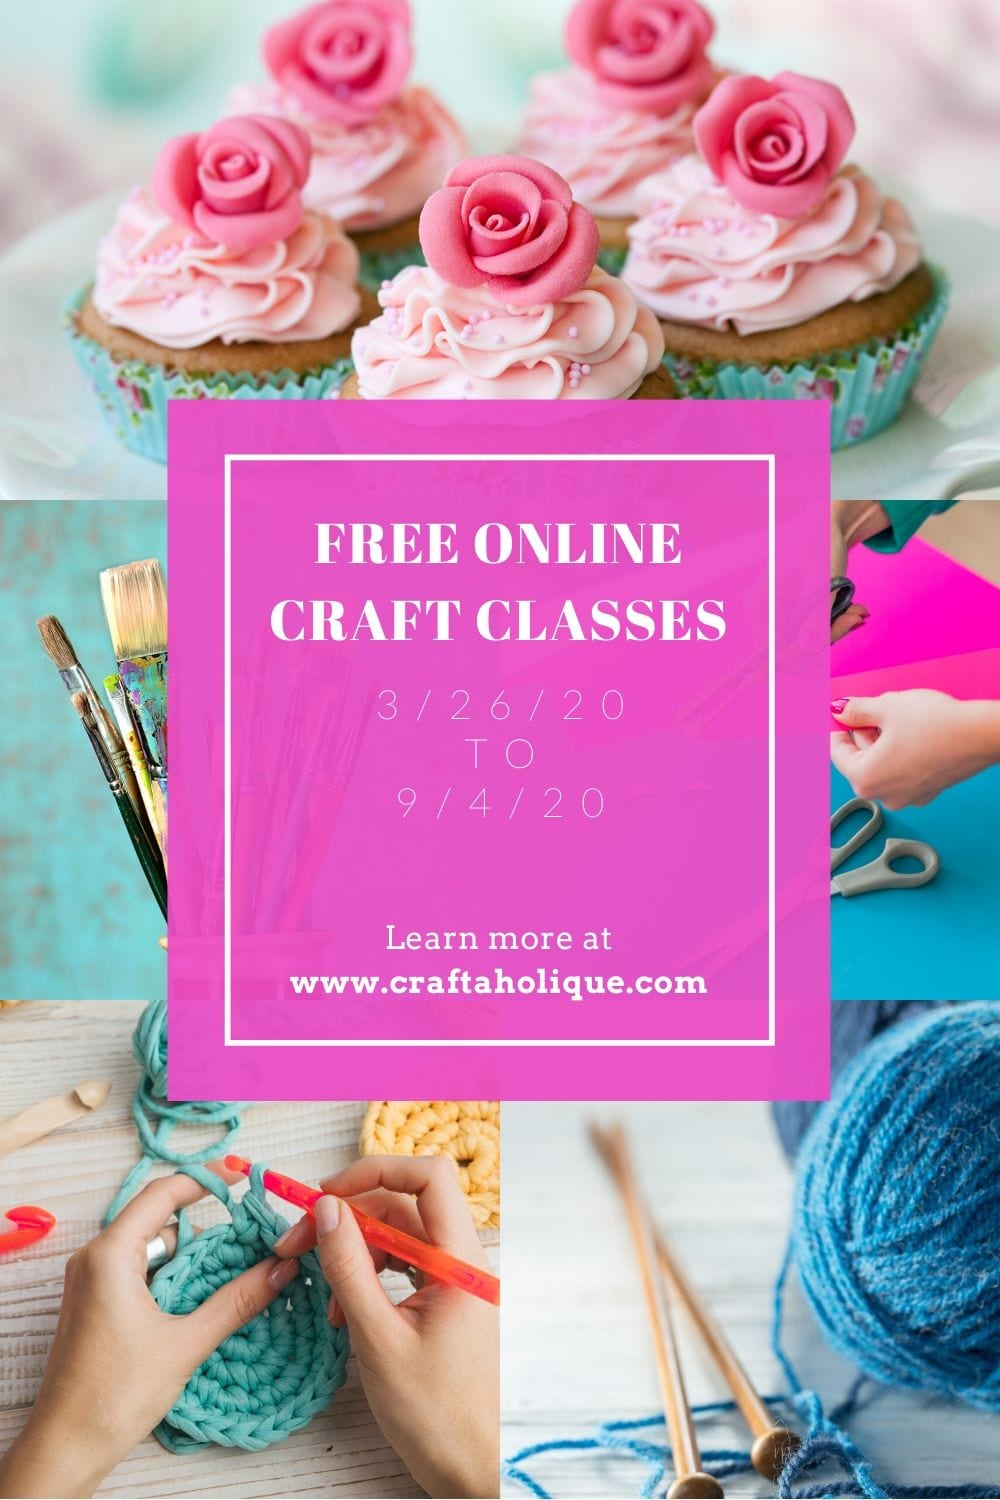 Free online craft classes at Bluprint - Craft More Happy Moments. Creativity Care Package in response to coronavirus COVID19.